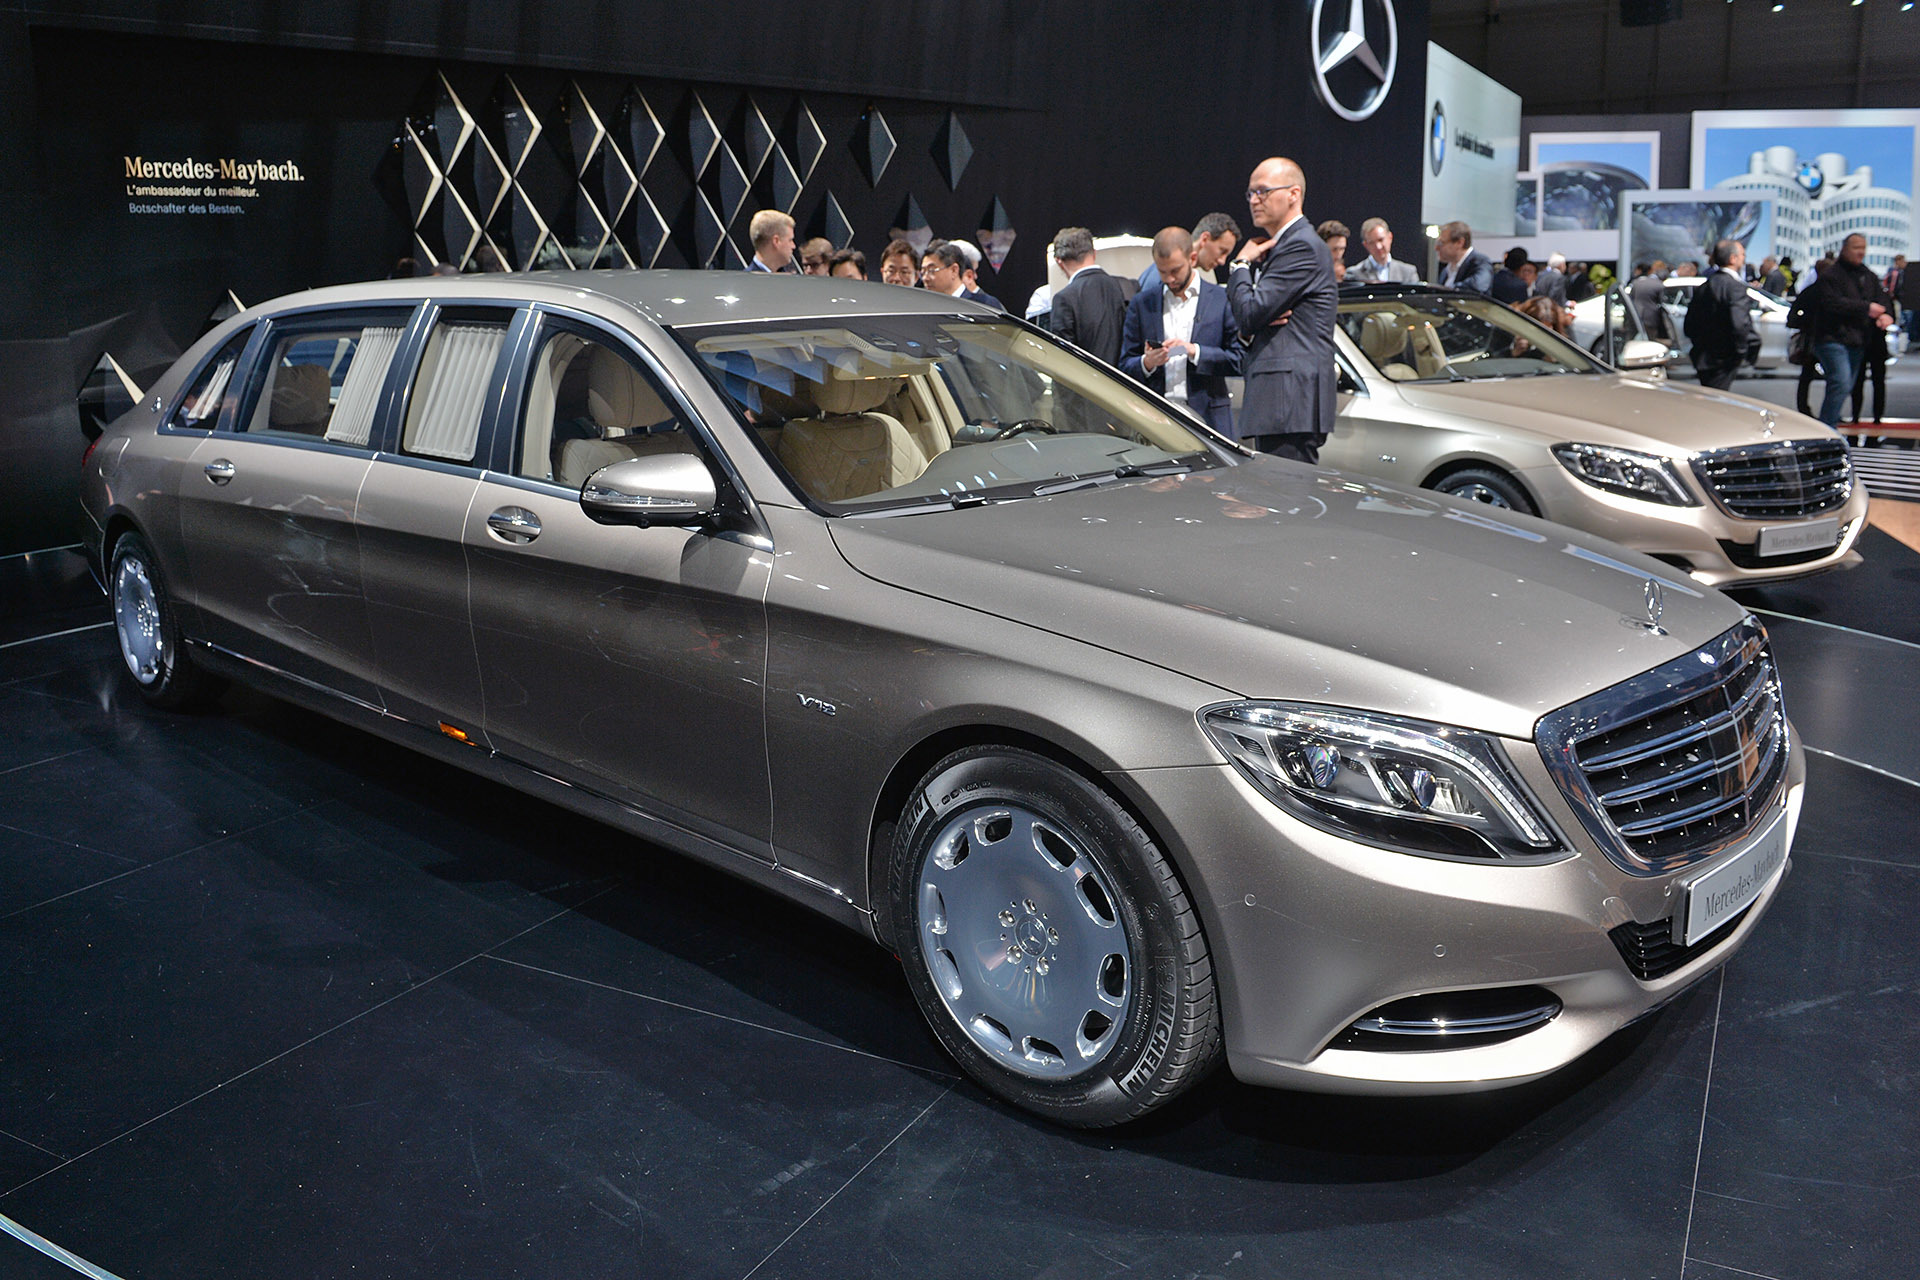 2016 mercedes benz s600 pullman maybach xxi century cars for Mercedes benz pullman